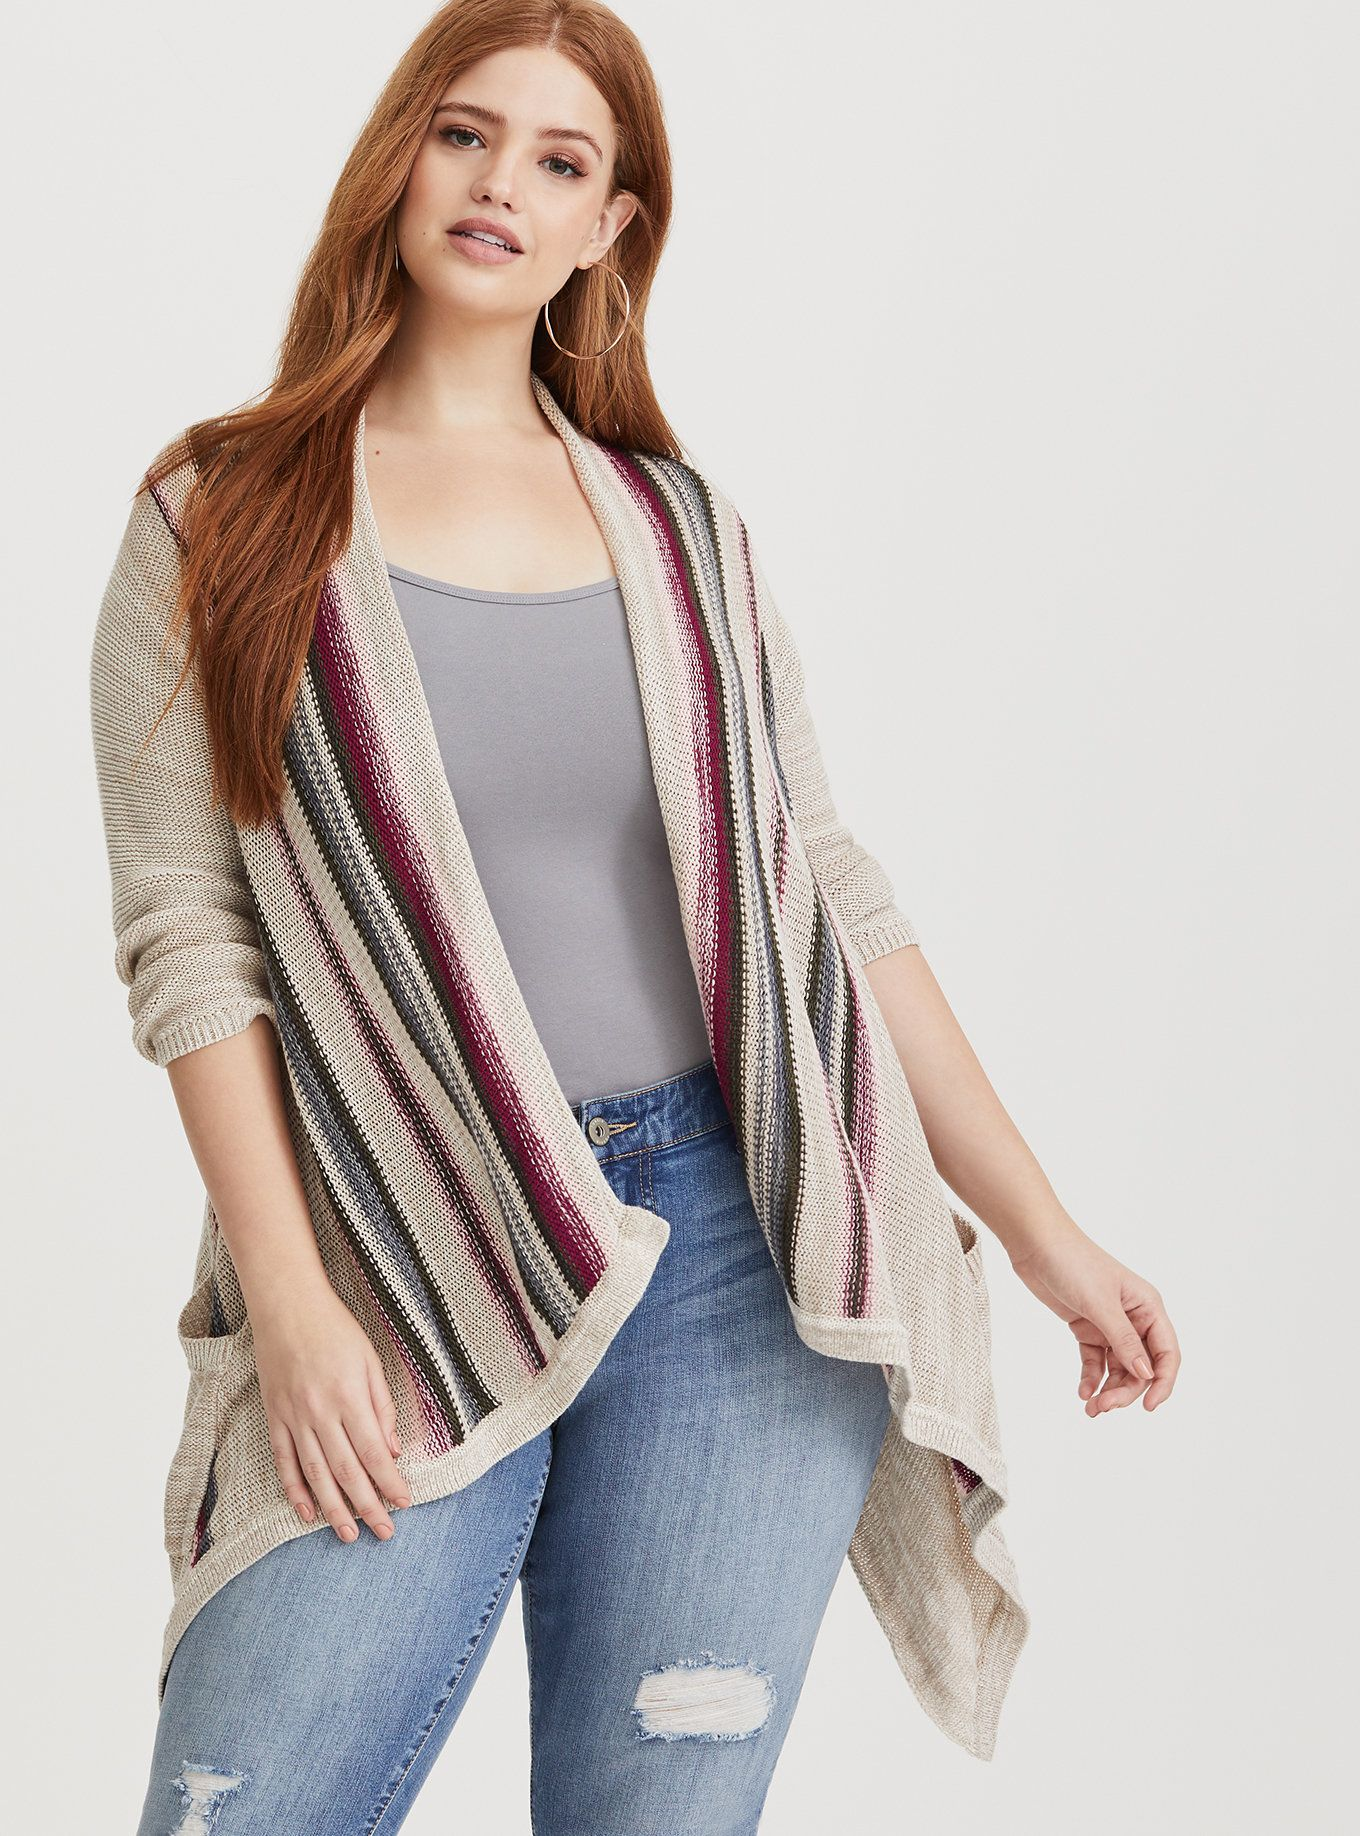 Multi Color Border Striped Open Front Knit Cardigan in 2020